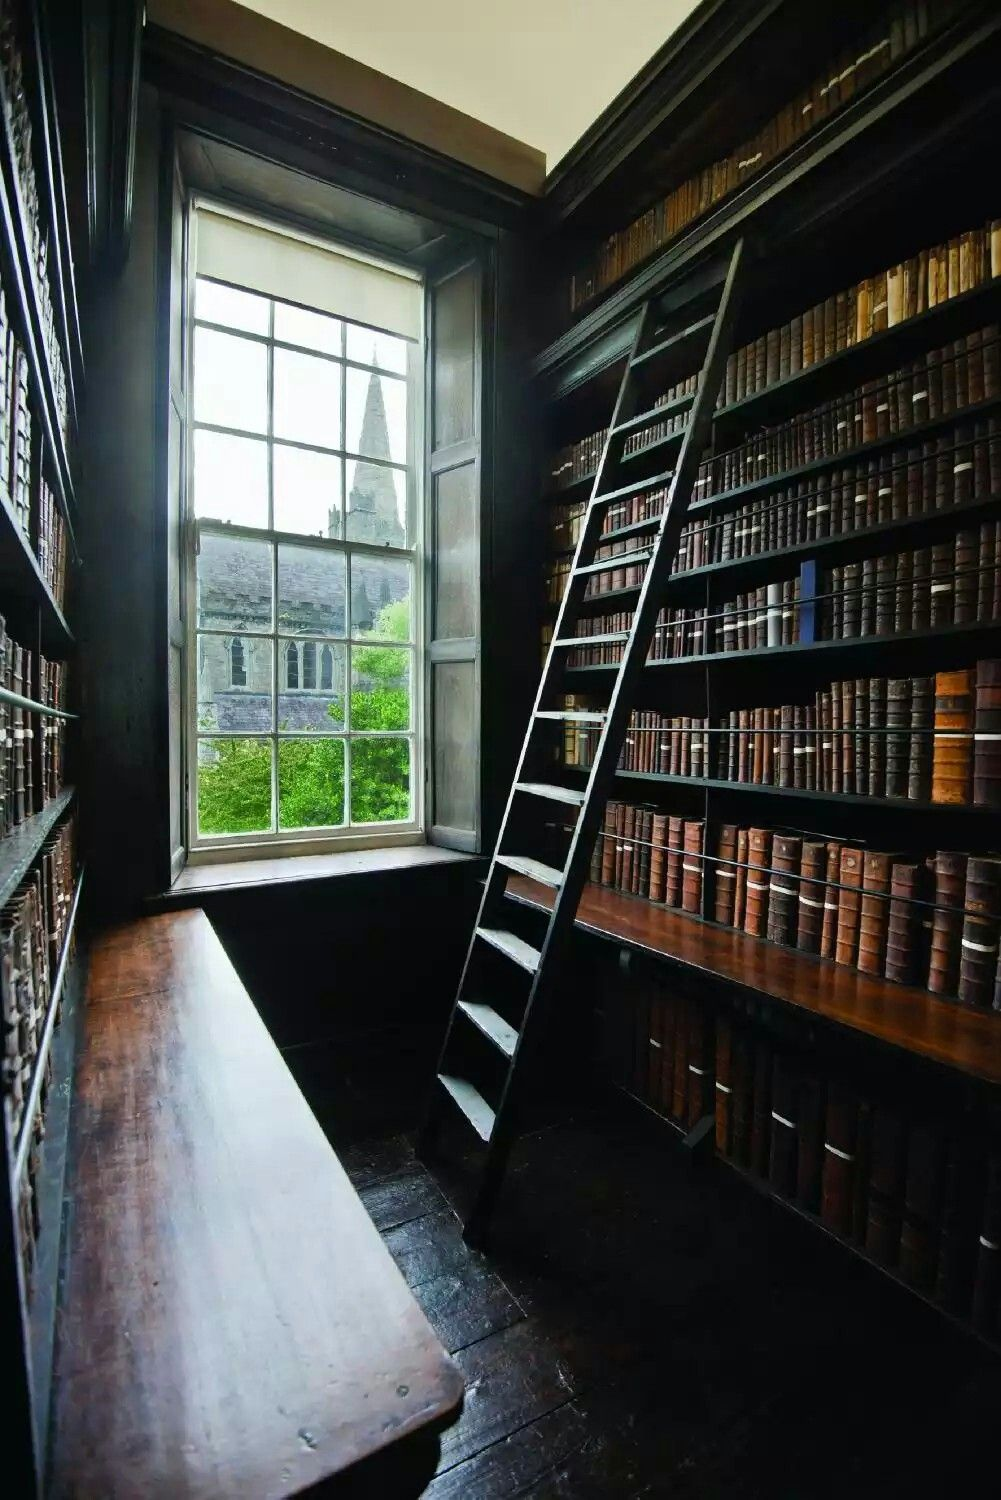 Marsh S Library Dublin Ireland By Matt Cashore Mit Bildern